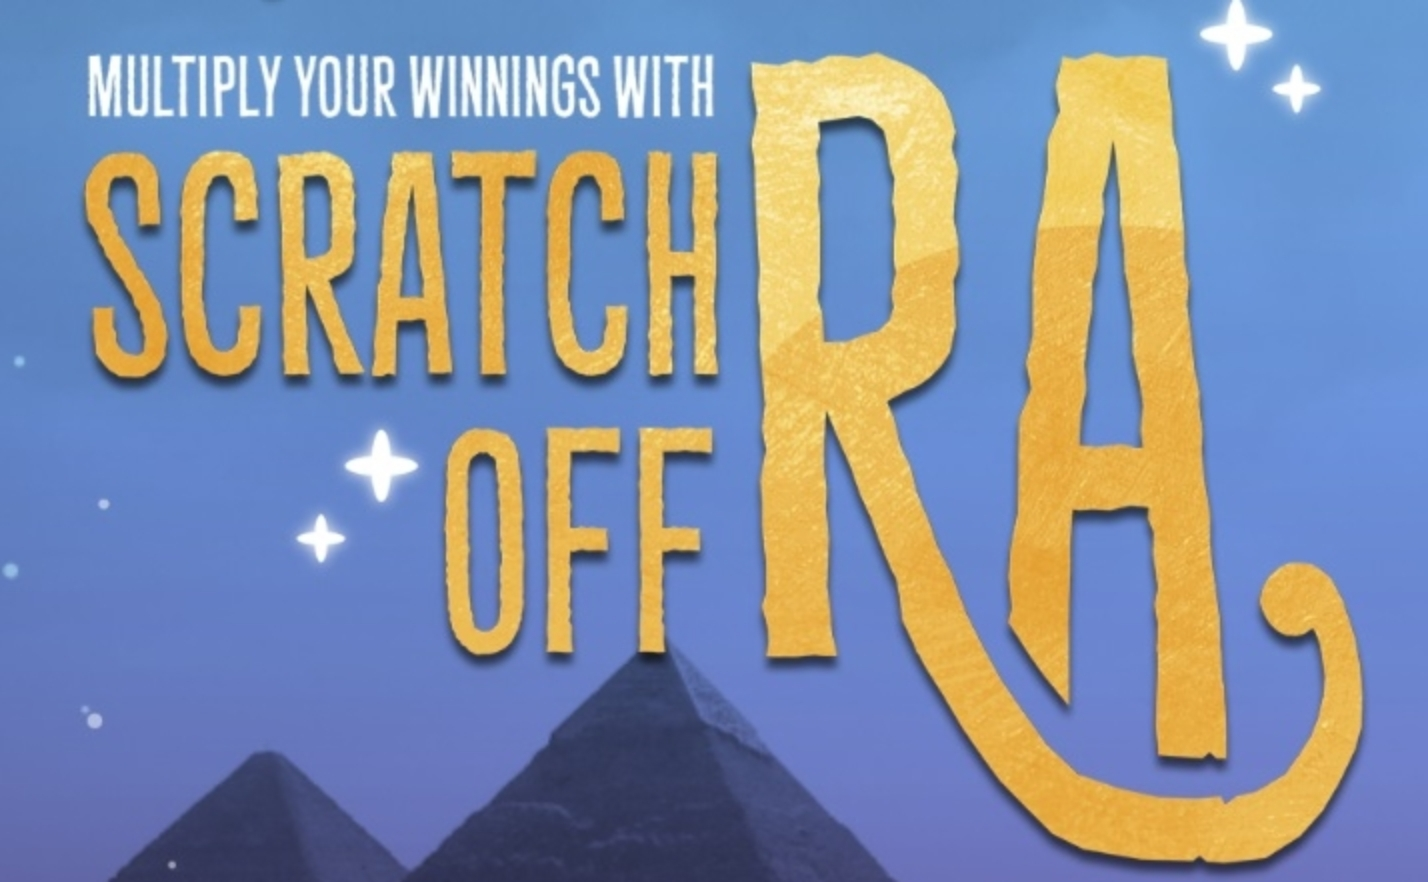 The Scratch off Ra Online Slot Demo Game by Gluck Games